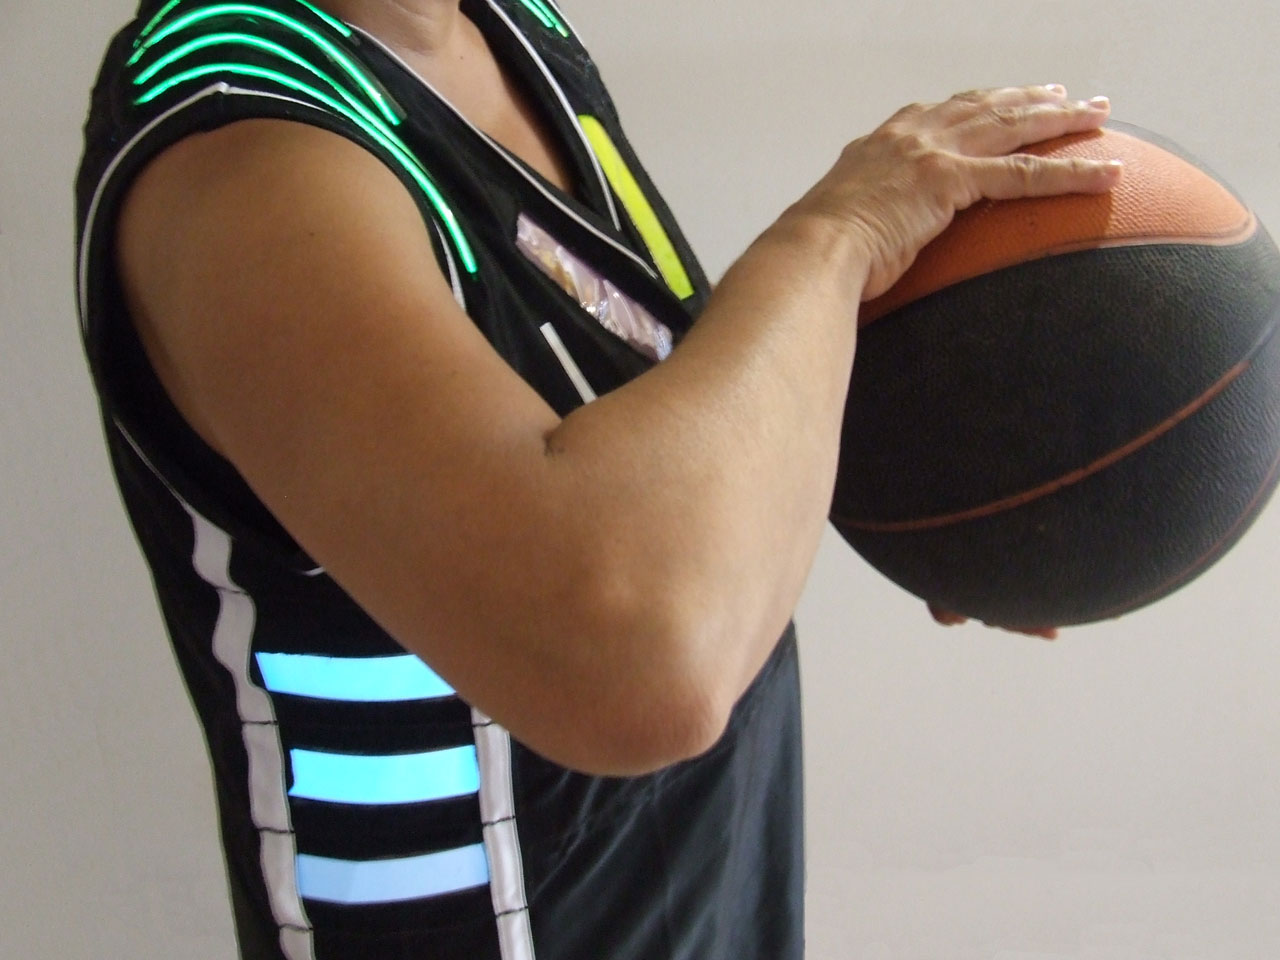 University of Sydney shows off wearable stats on a basketball jersey